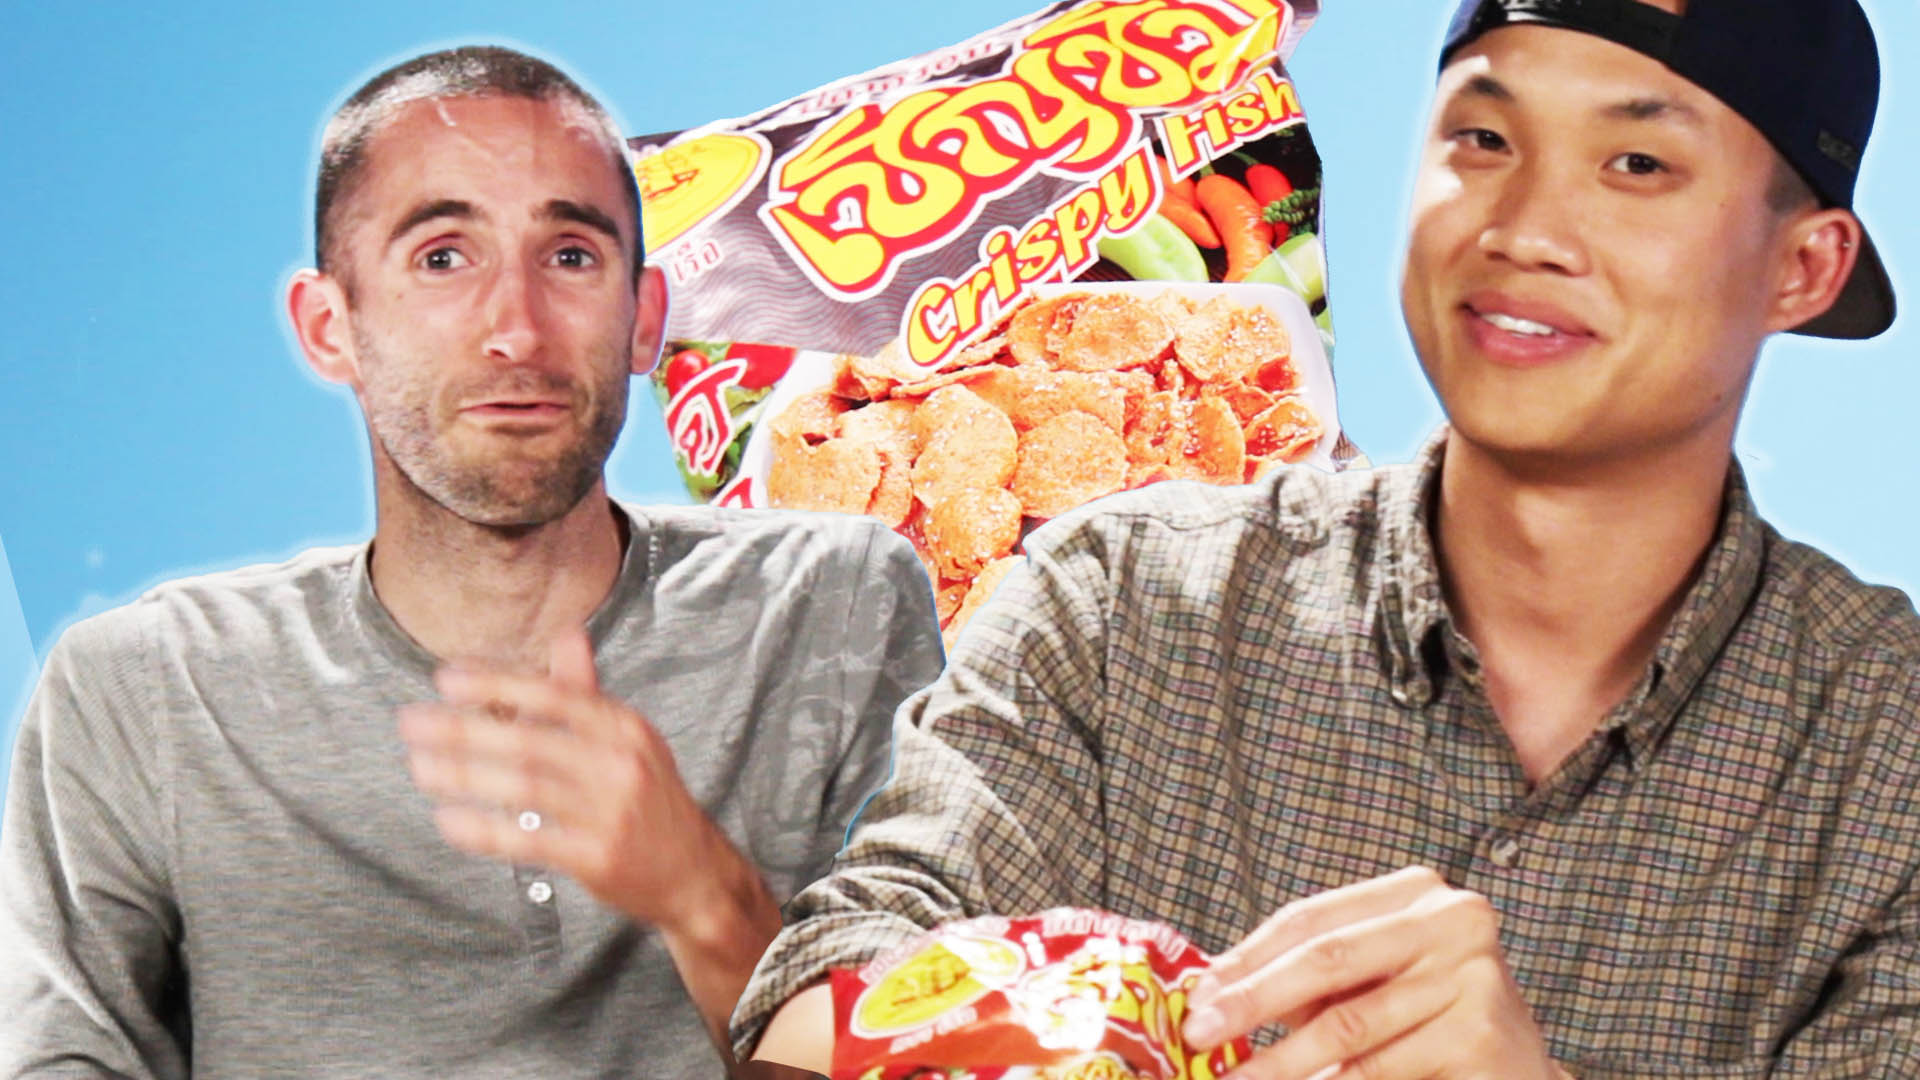 These Americans Tried Thai Snacks and Things Got Fishy